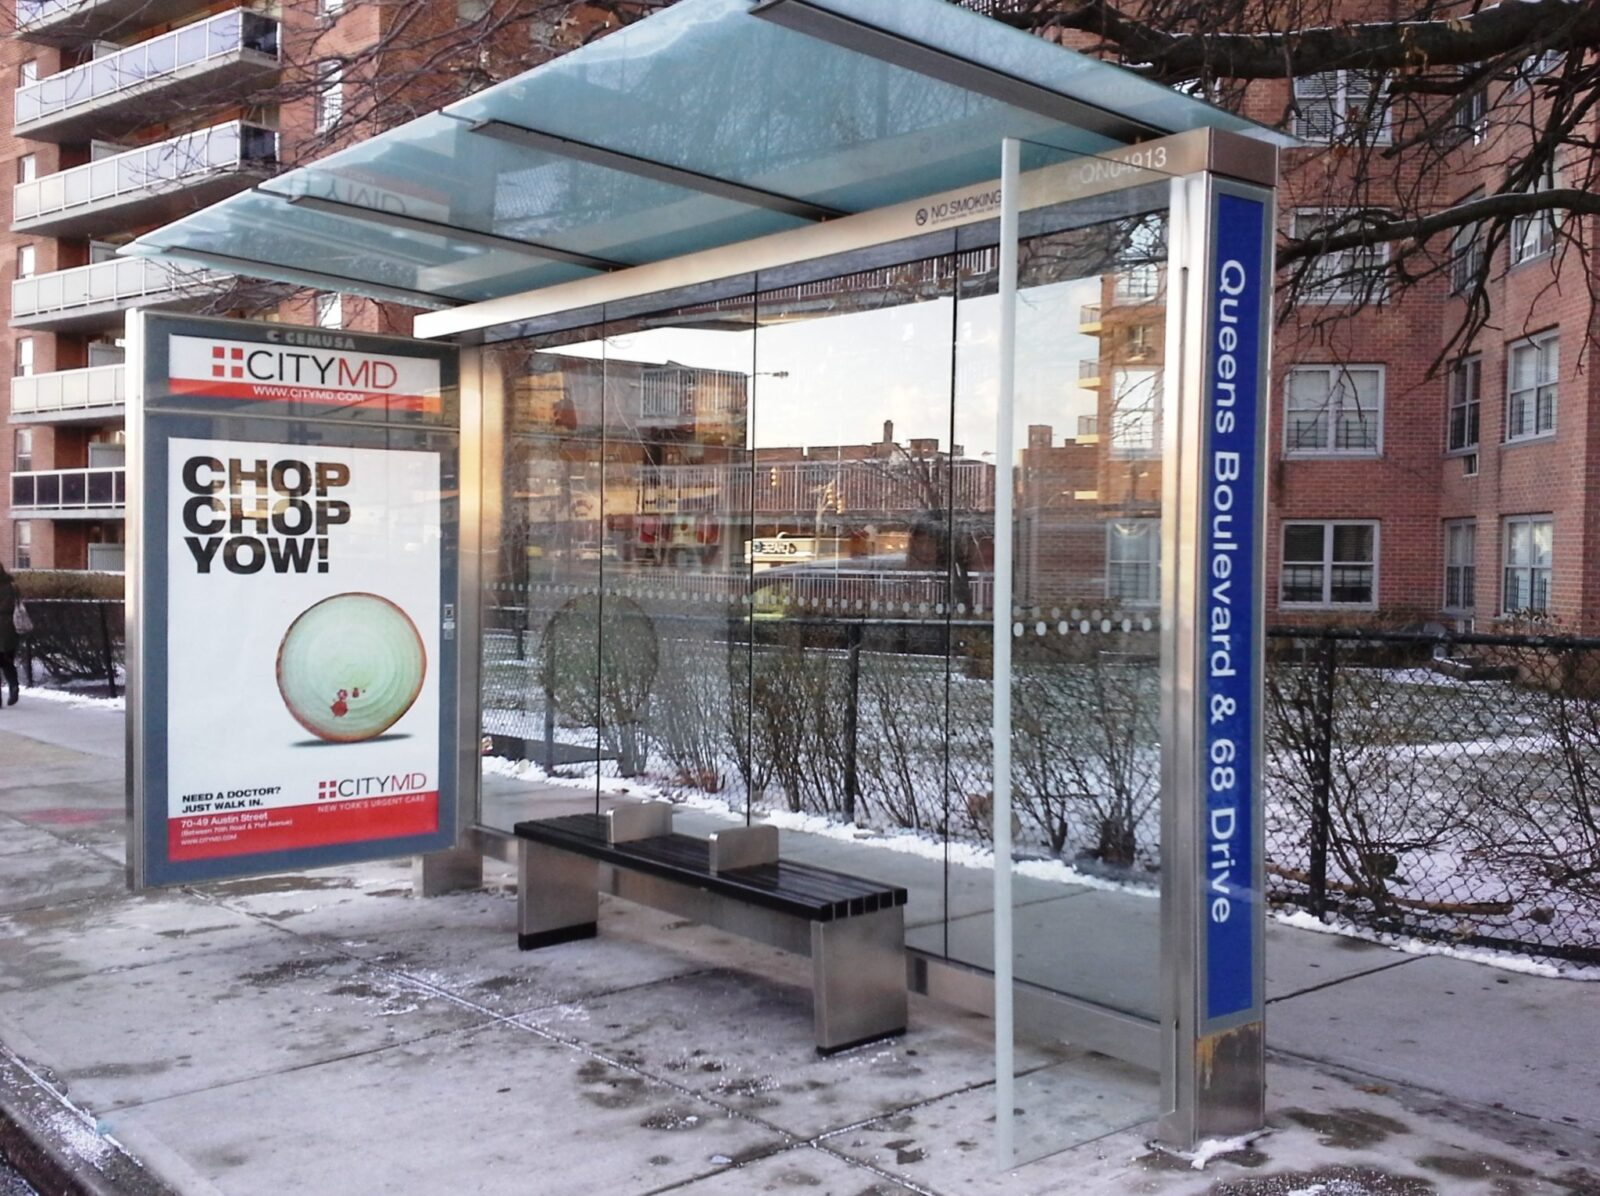 Street Furniture City MD BUS SHELTER ADVERTISING